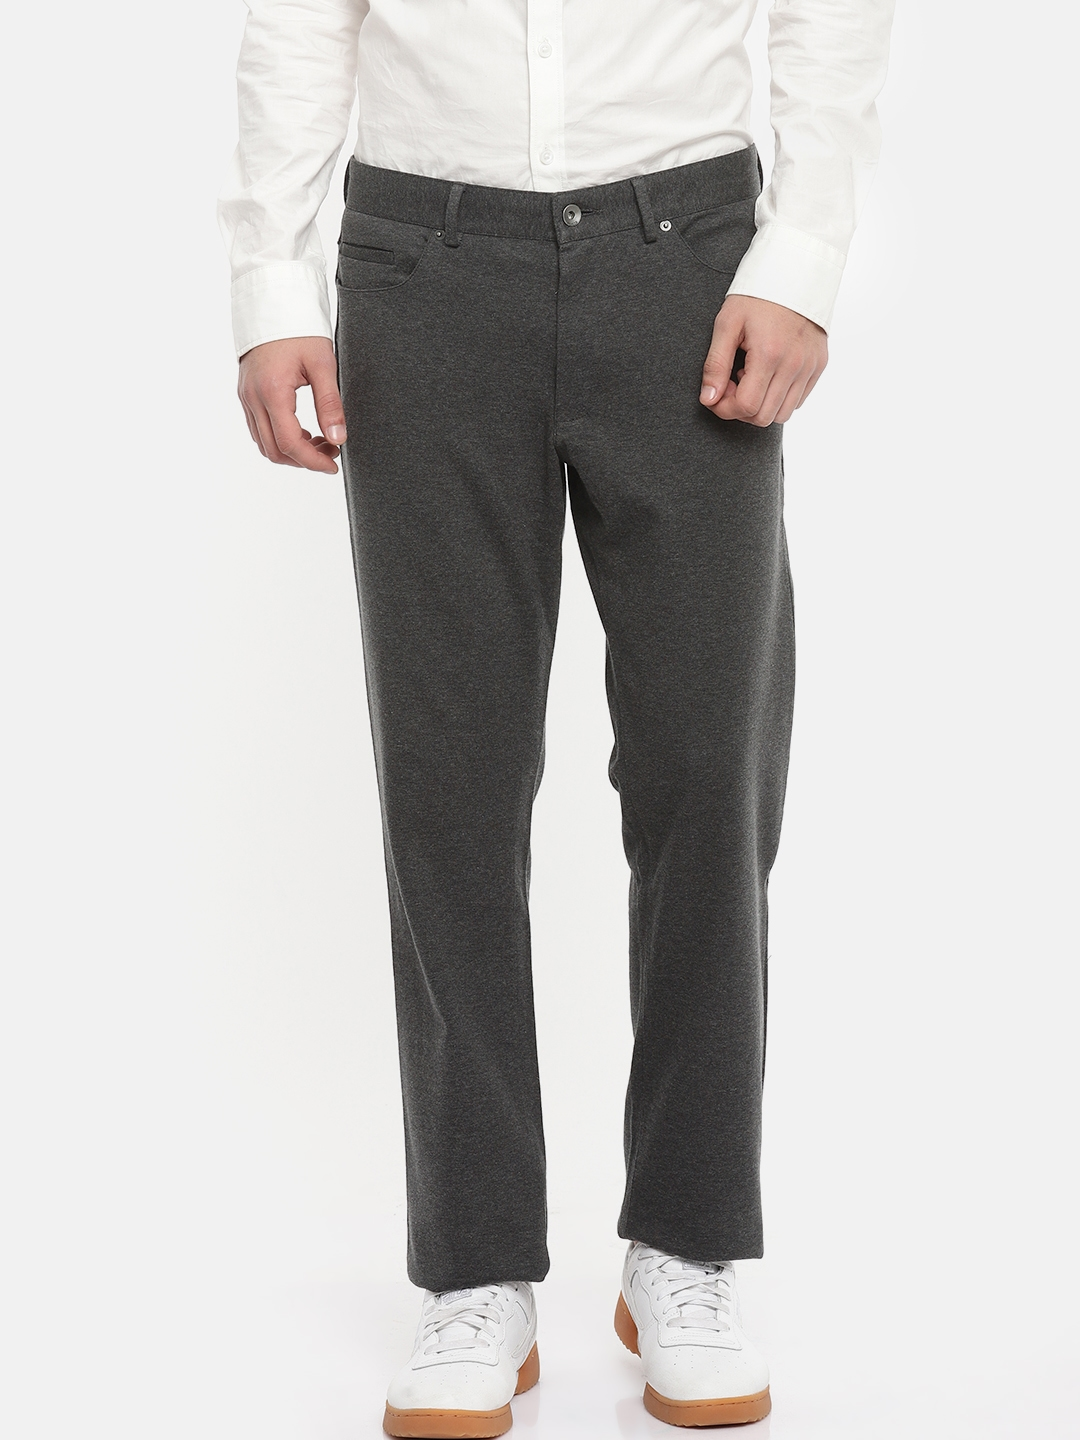 8ee668cfb25a Calvin Klein Jeans Men Charcoal Grey Slim Fit Solid Regular Trousers